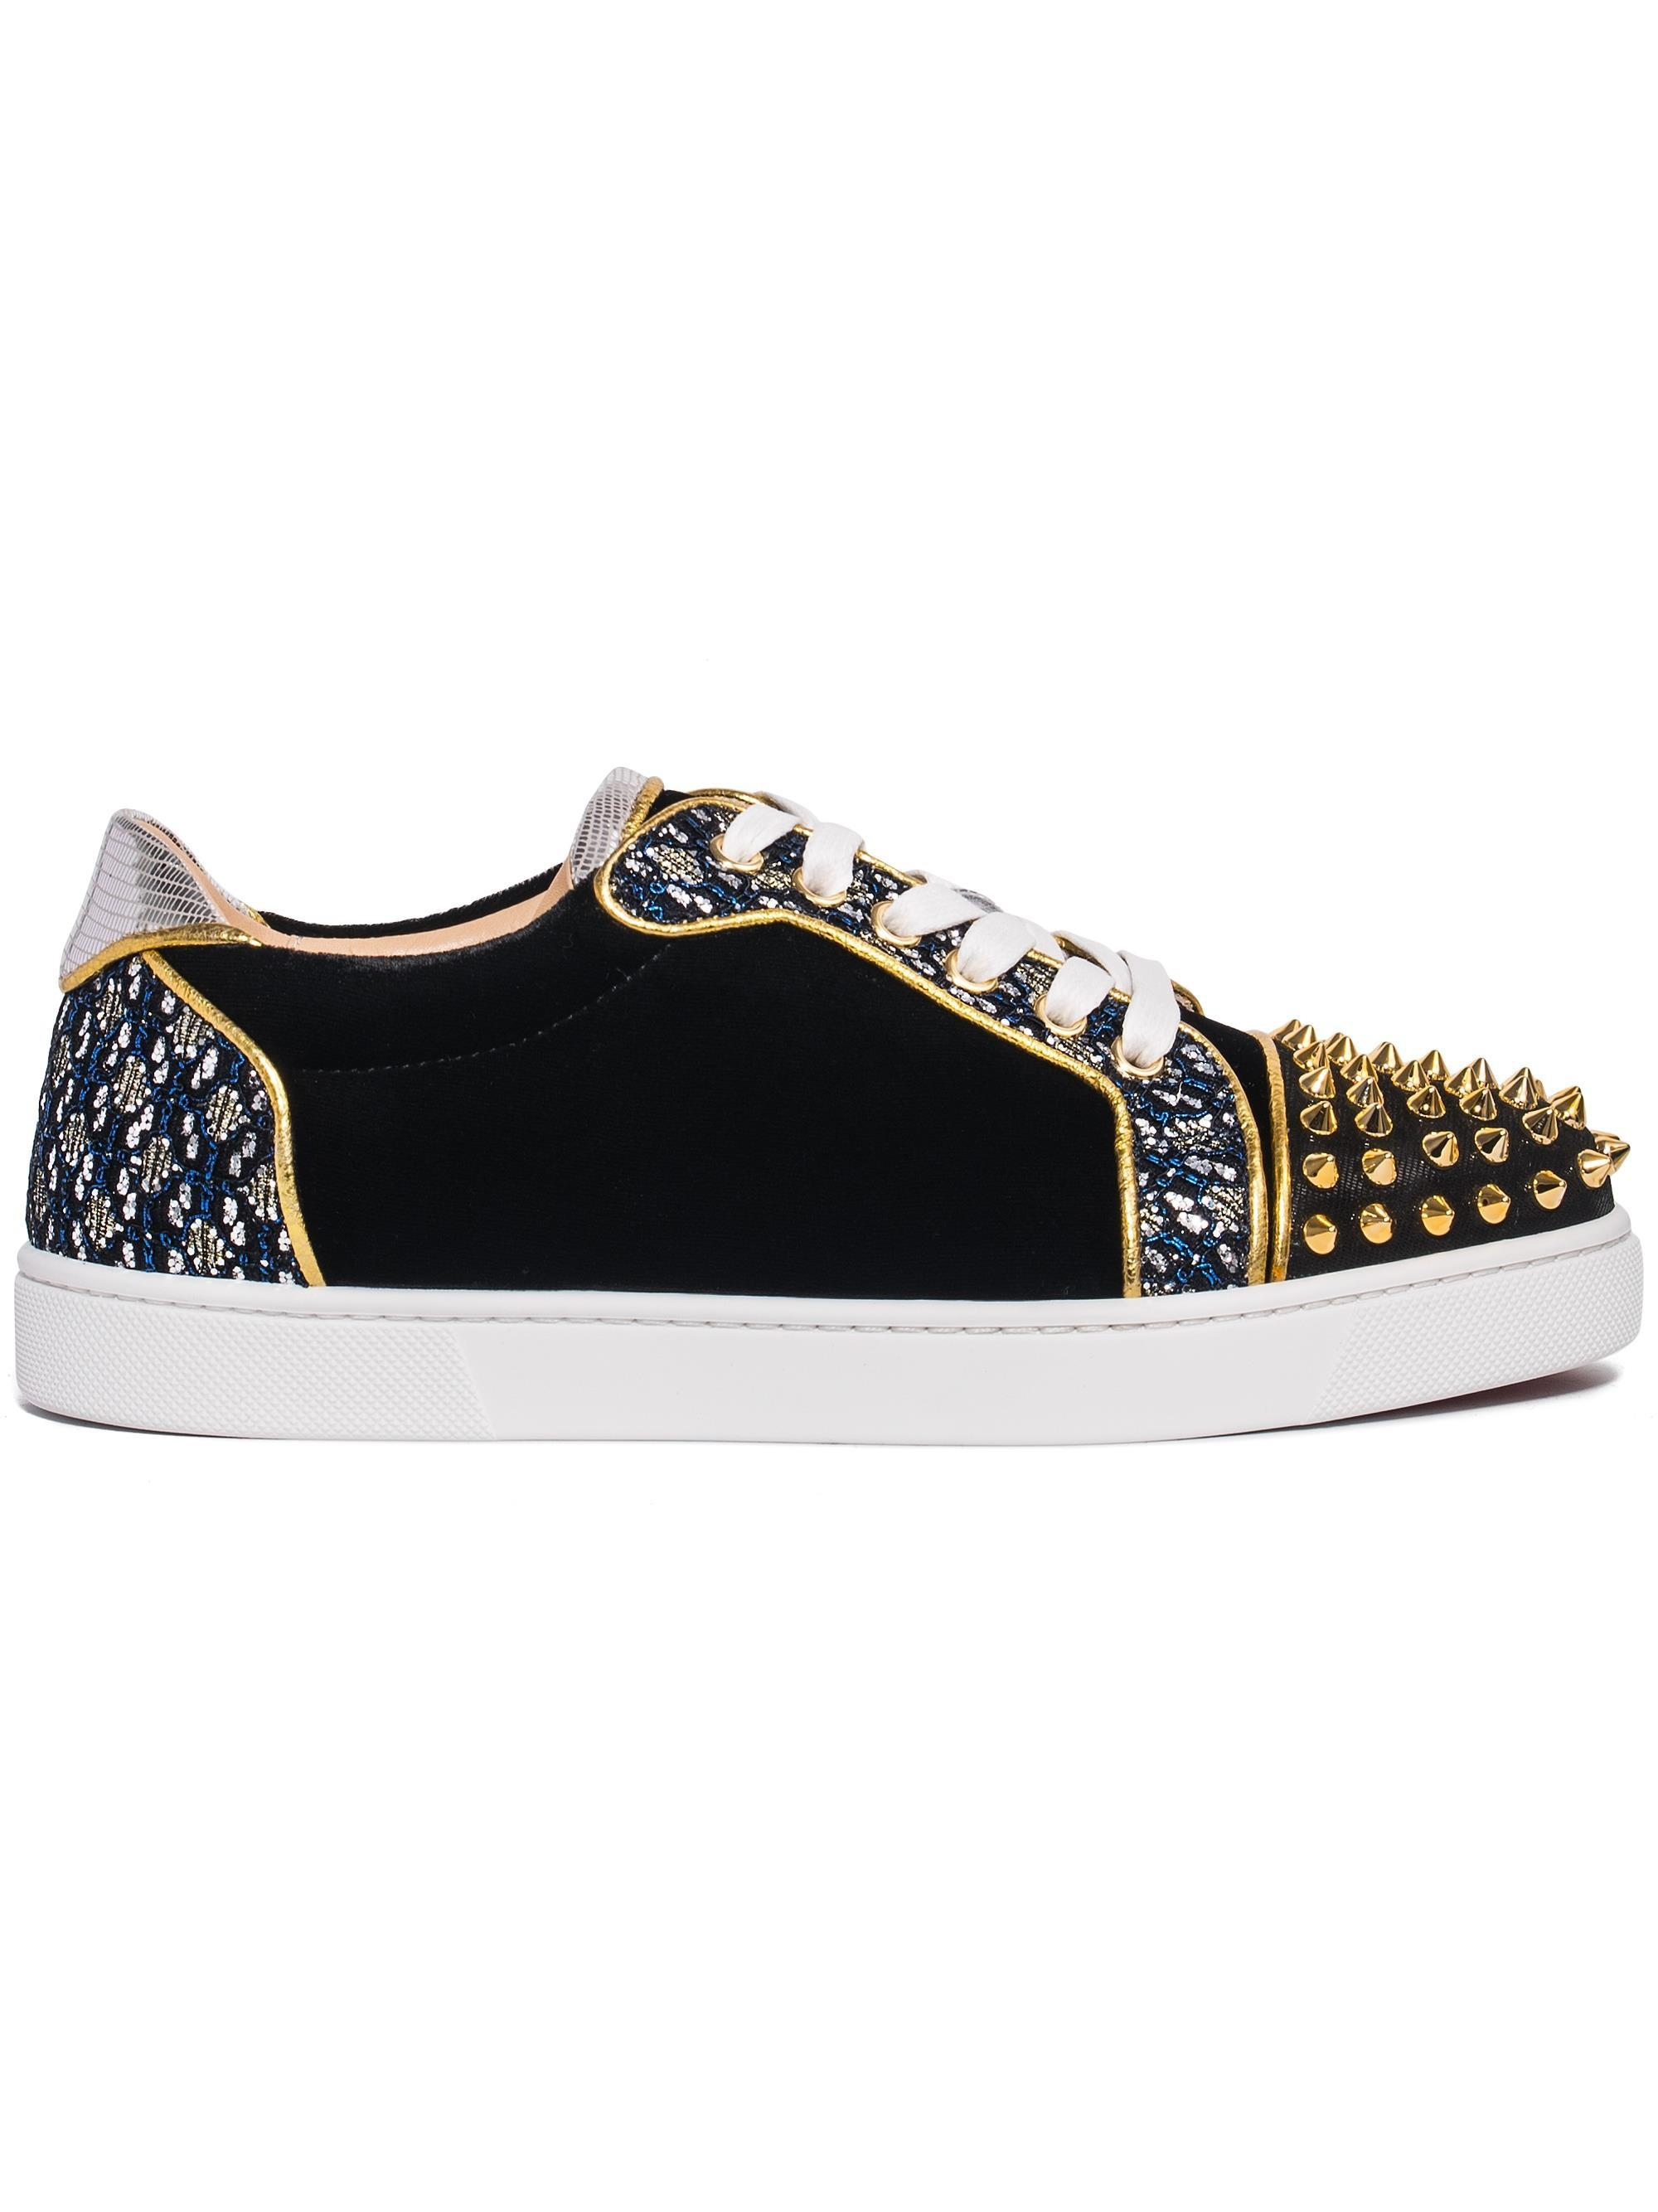 83f3c3848922 Lyst - Christian Louboutin Vieira Spikes Lace-up Low-top Sneakers in ...